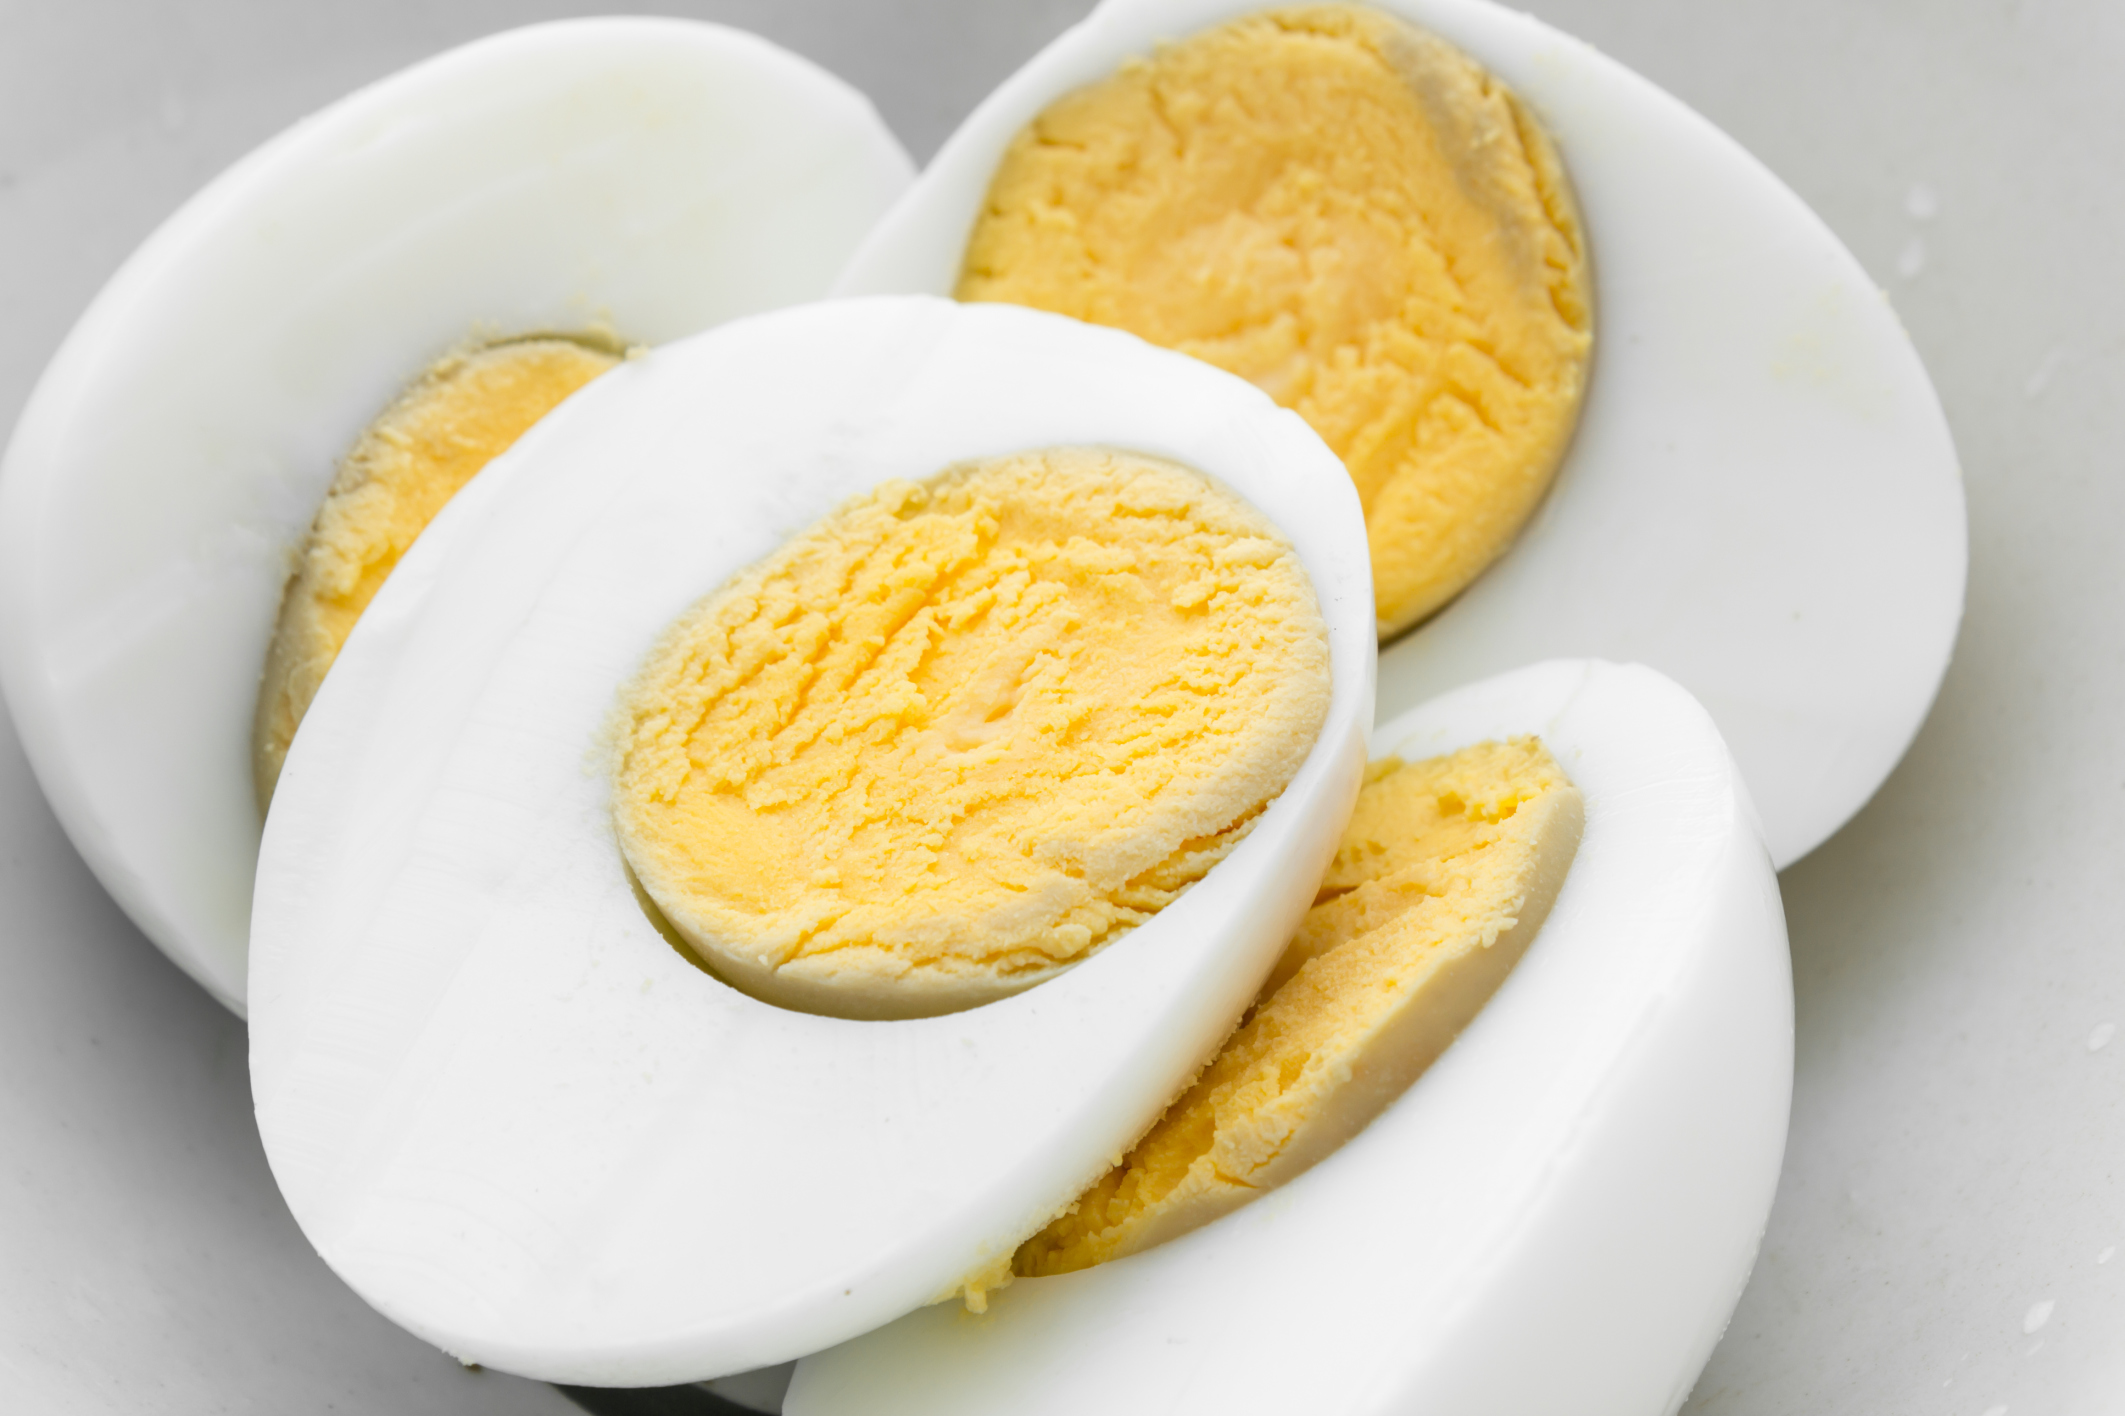 Psychotherapy is almost like a soft-boiled egg 16